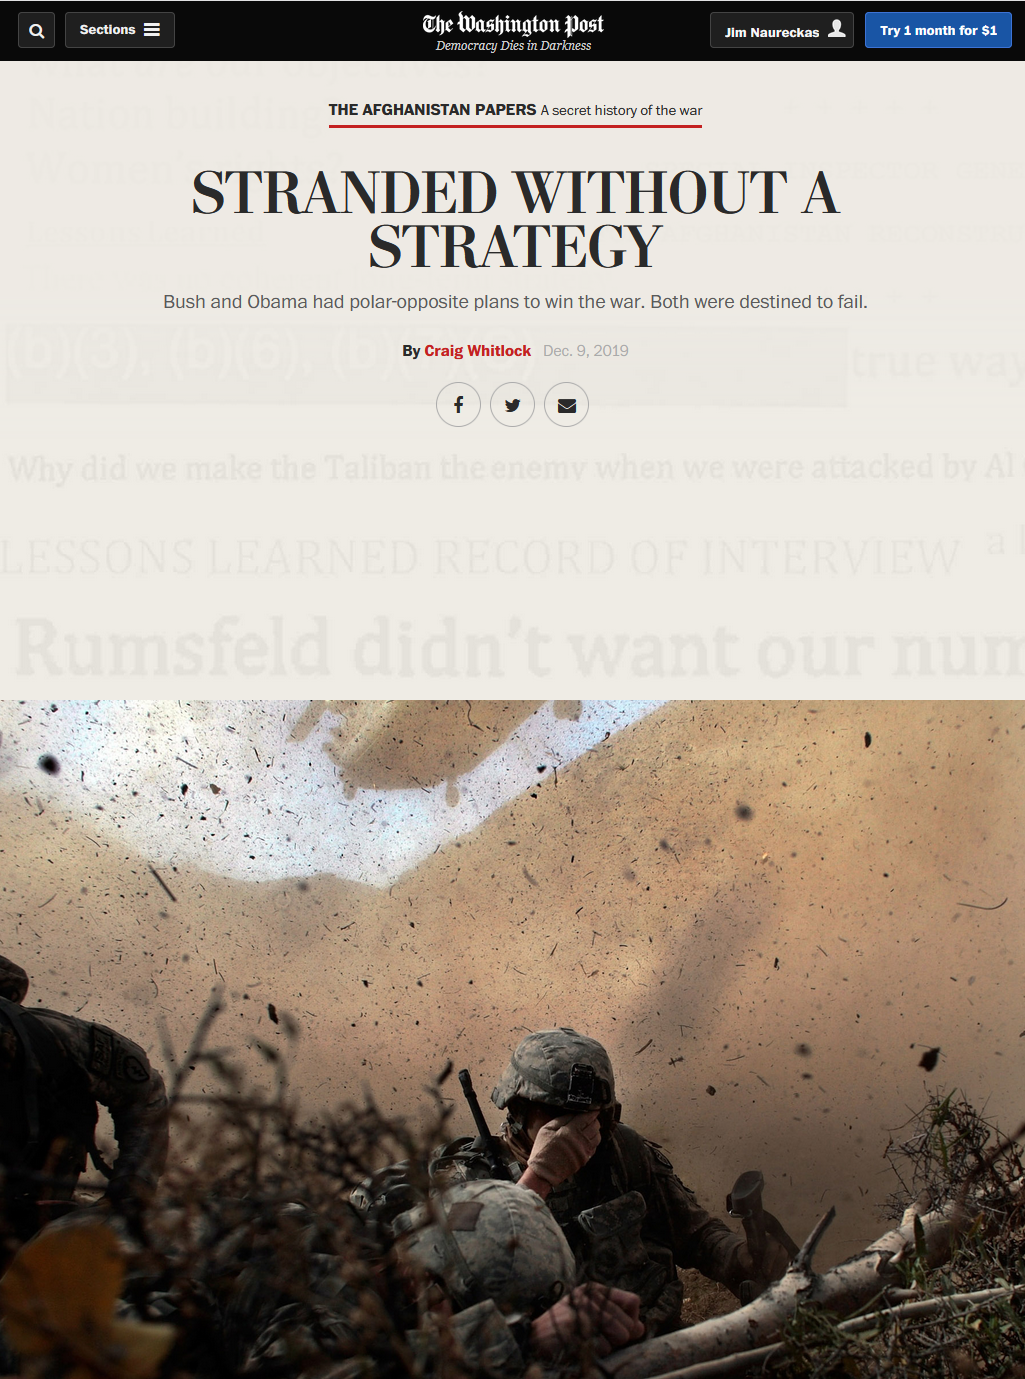 WaPo: Stranded Without a Strategy